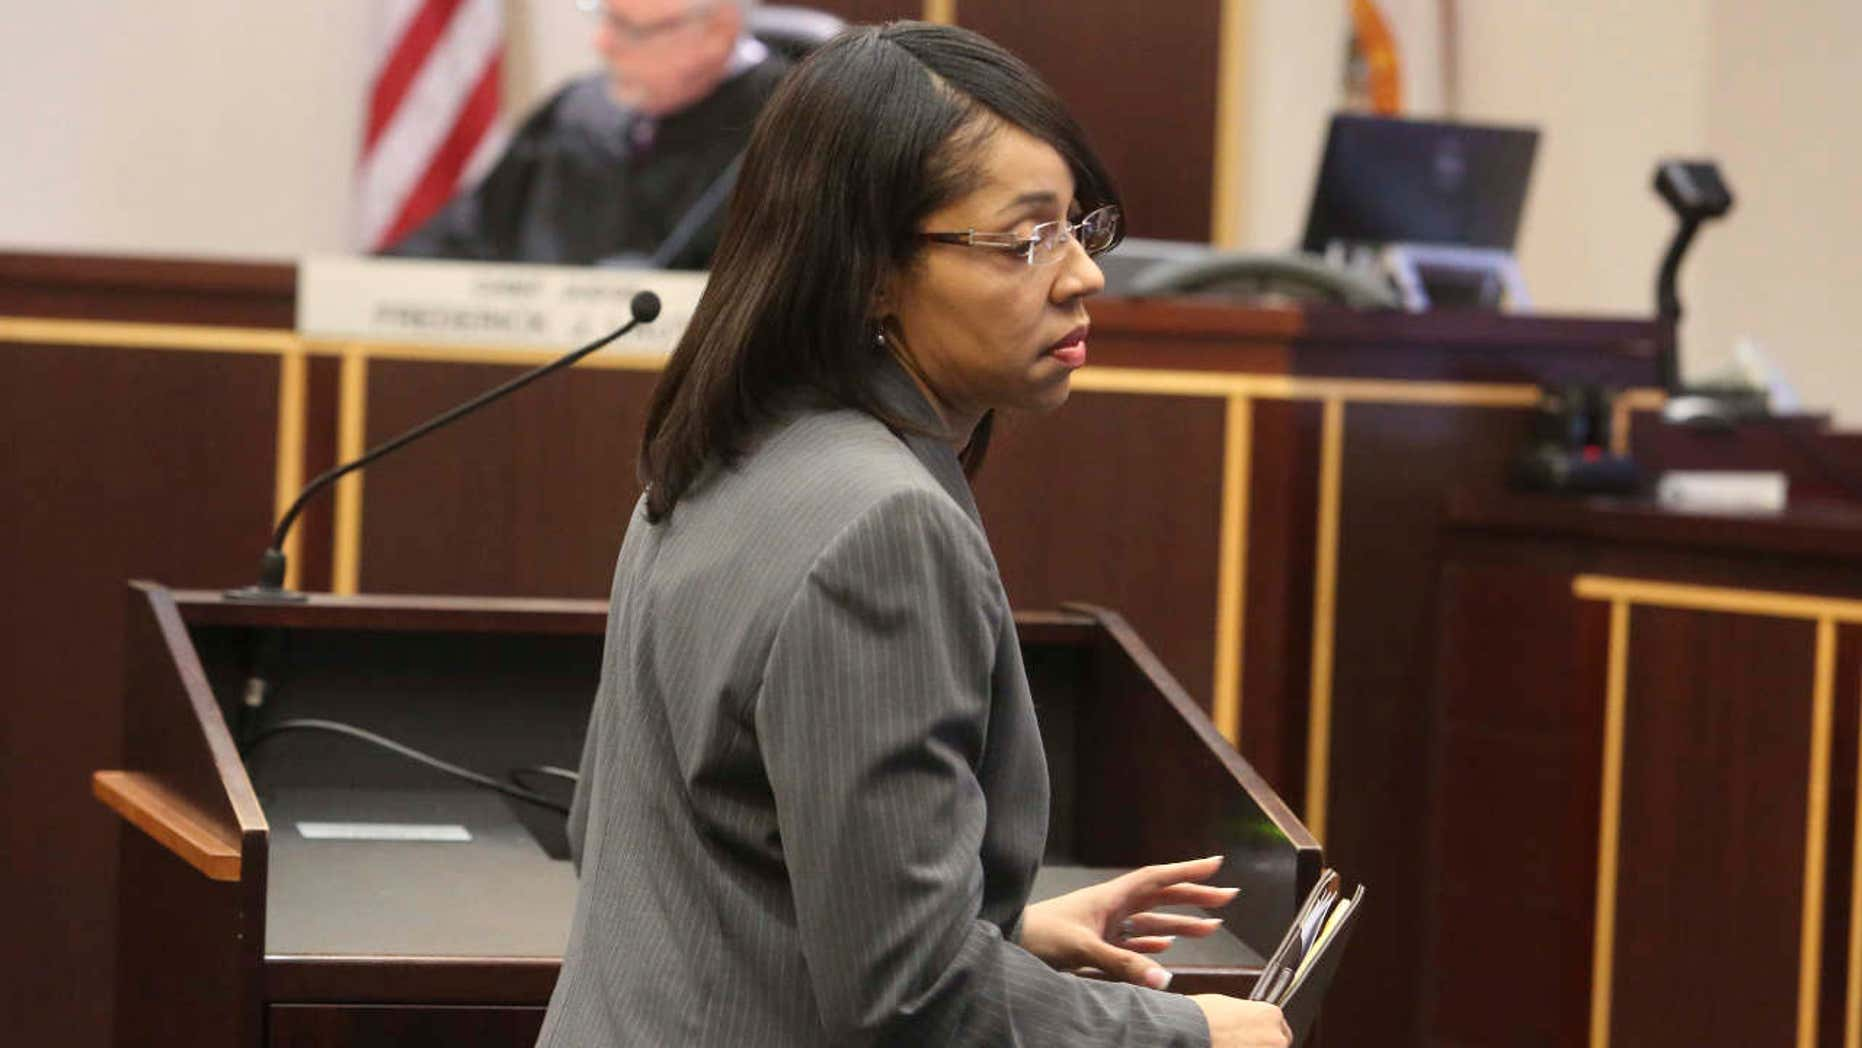 State Attorney Aramis Ayala appears in court in Orlando, Fla., Monday, March 20, 2017, where she asked for Markeith Loyd's case to pause while she researches if Gov. Rick Scott had the authority to pull her off after she announced she would not be seeking the death penalty.